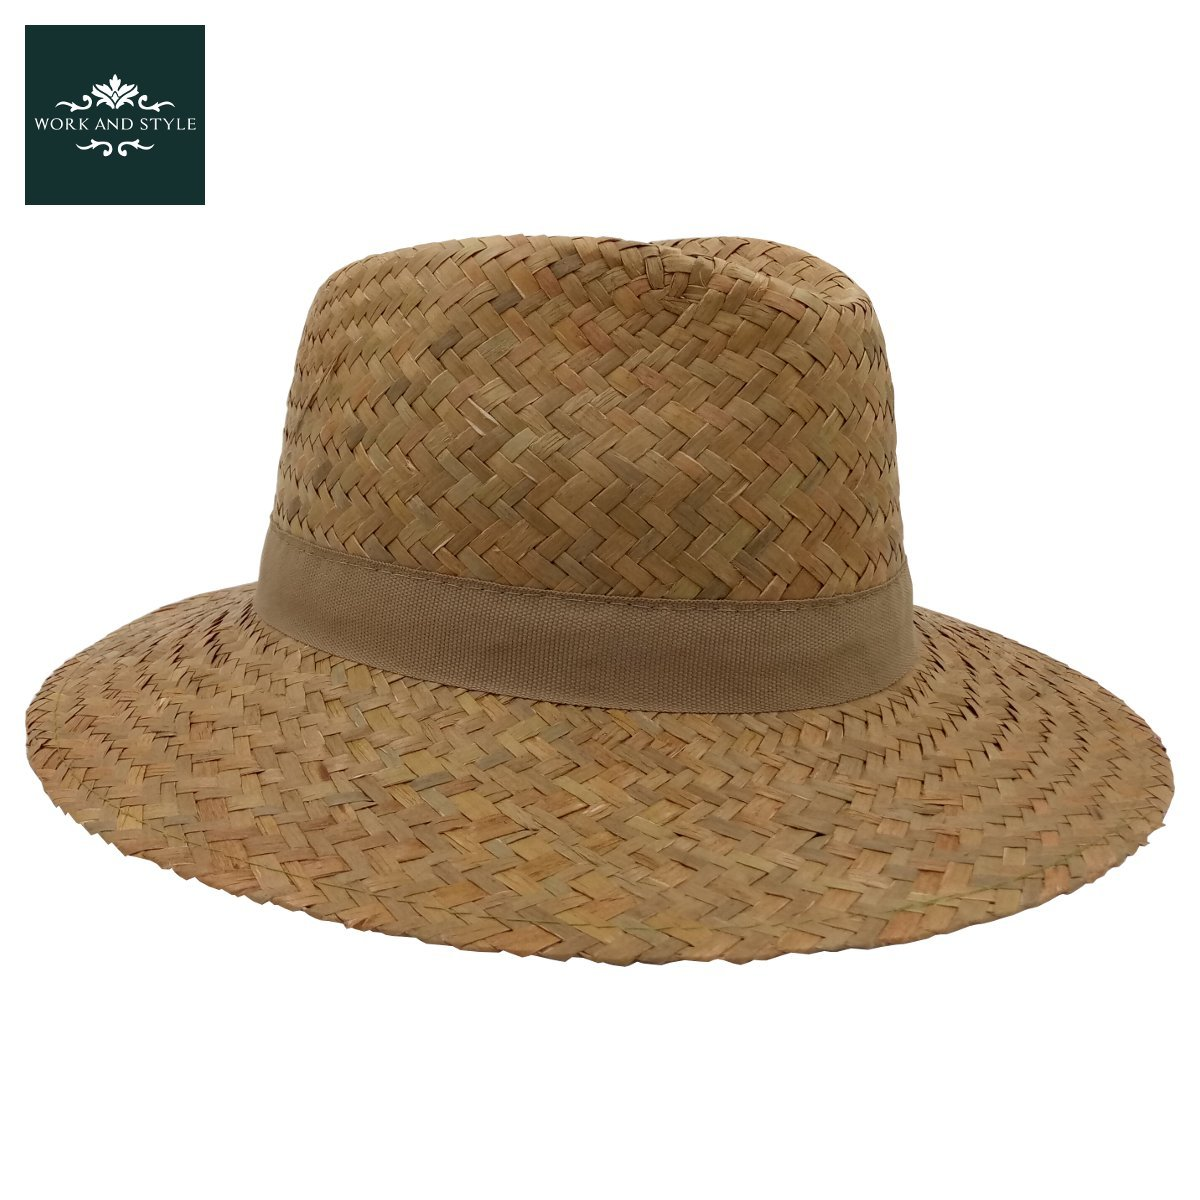 WORK AND STYLE Traveller Country Cappello di Paglia by W0309020